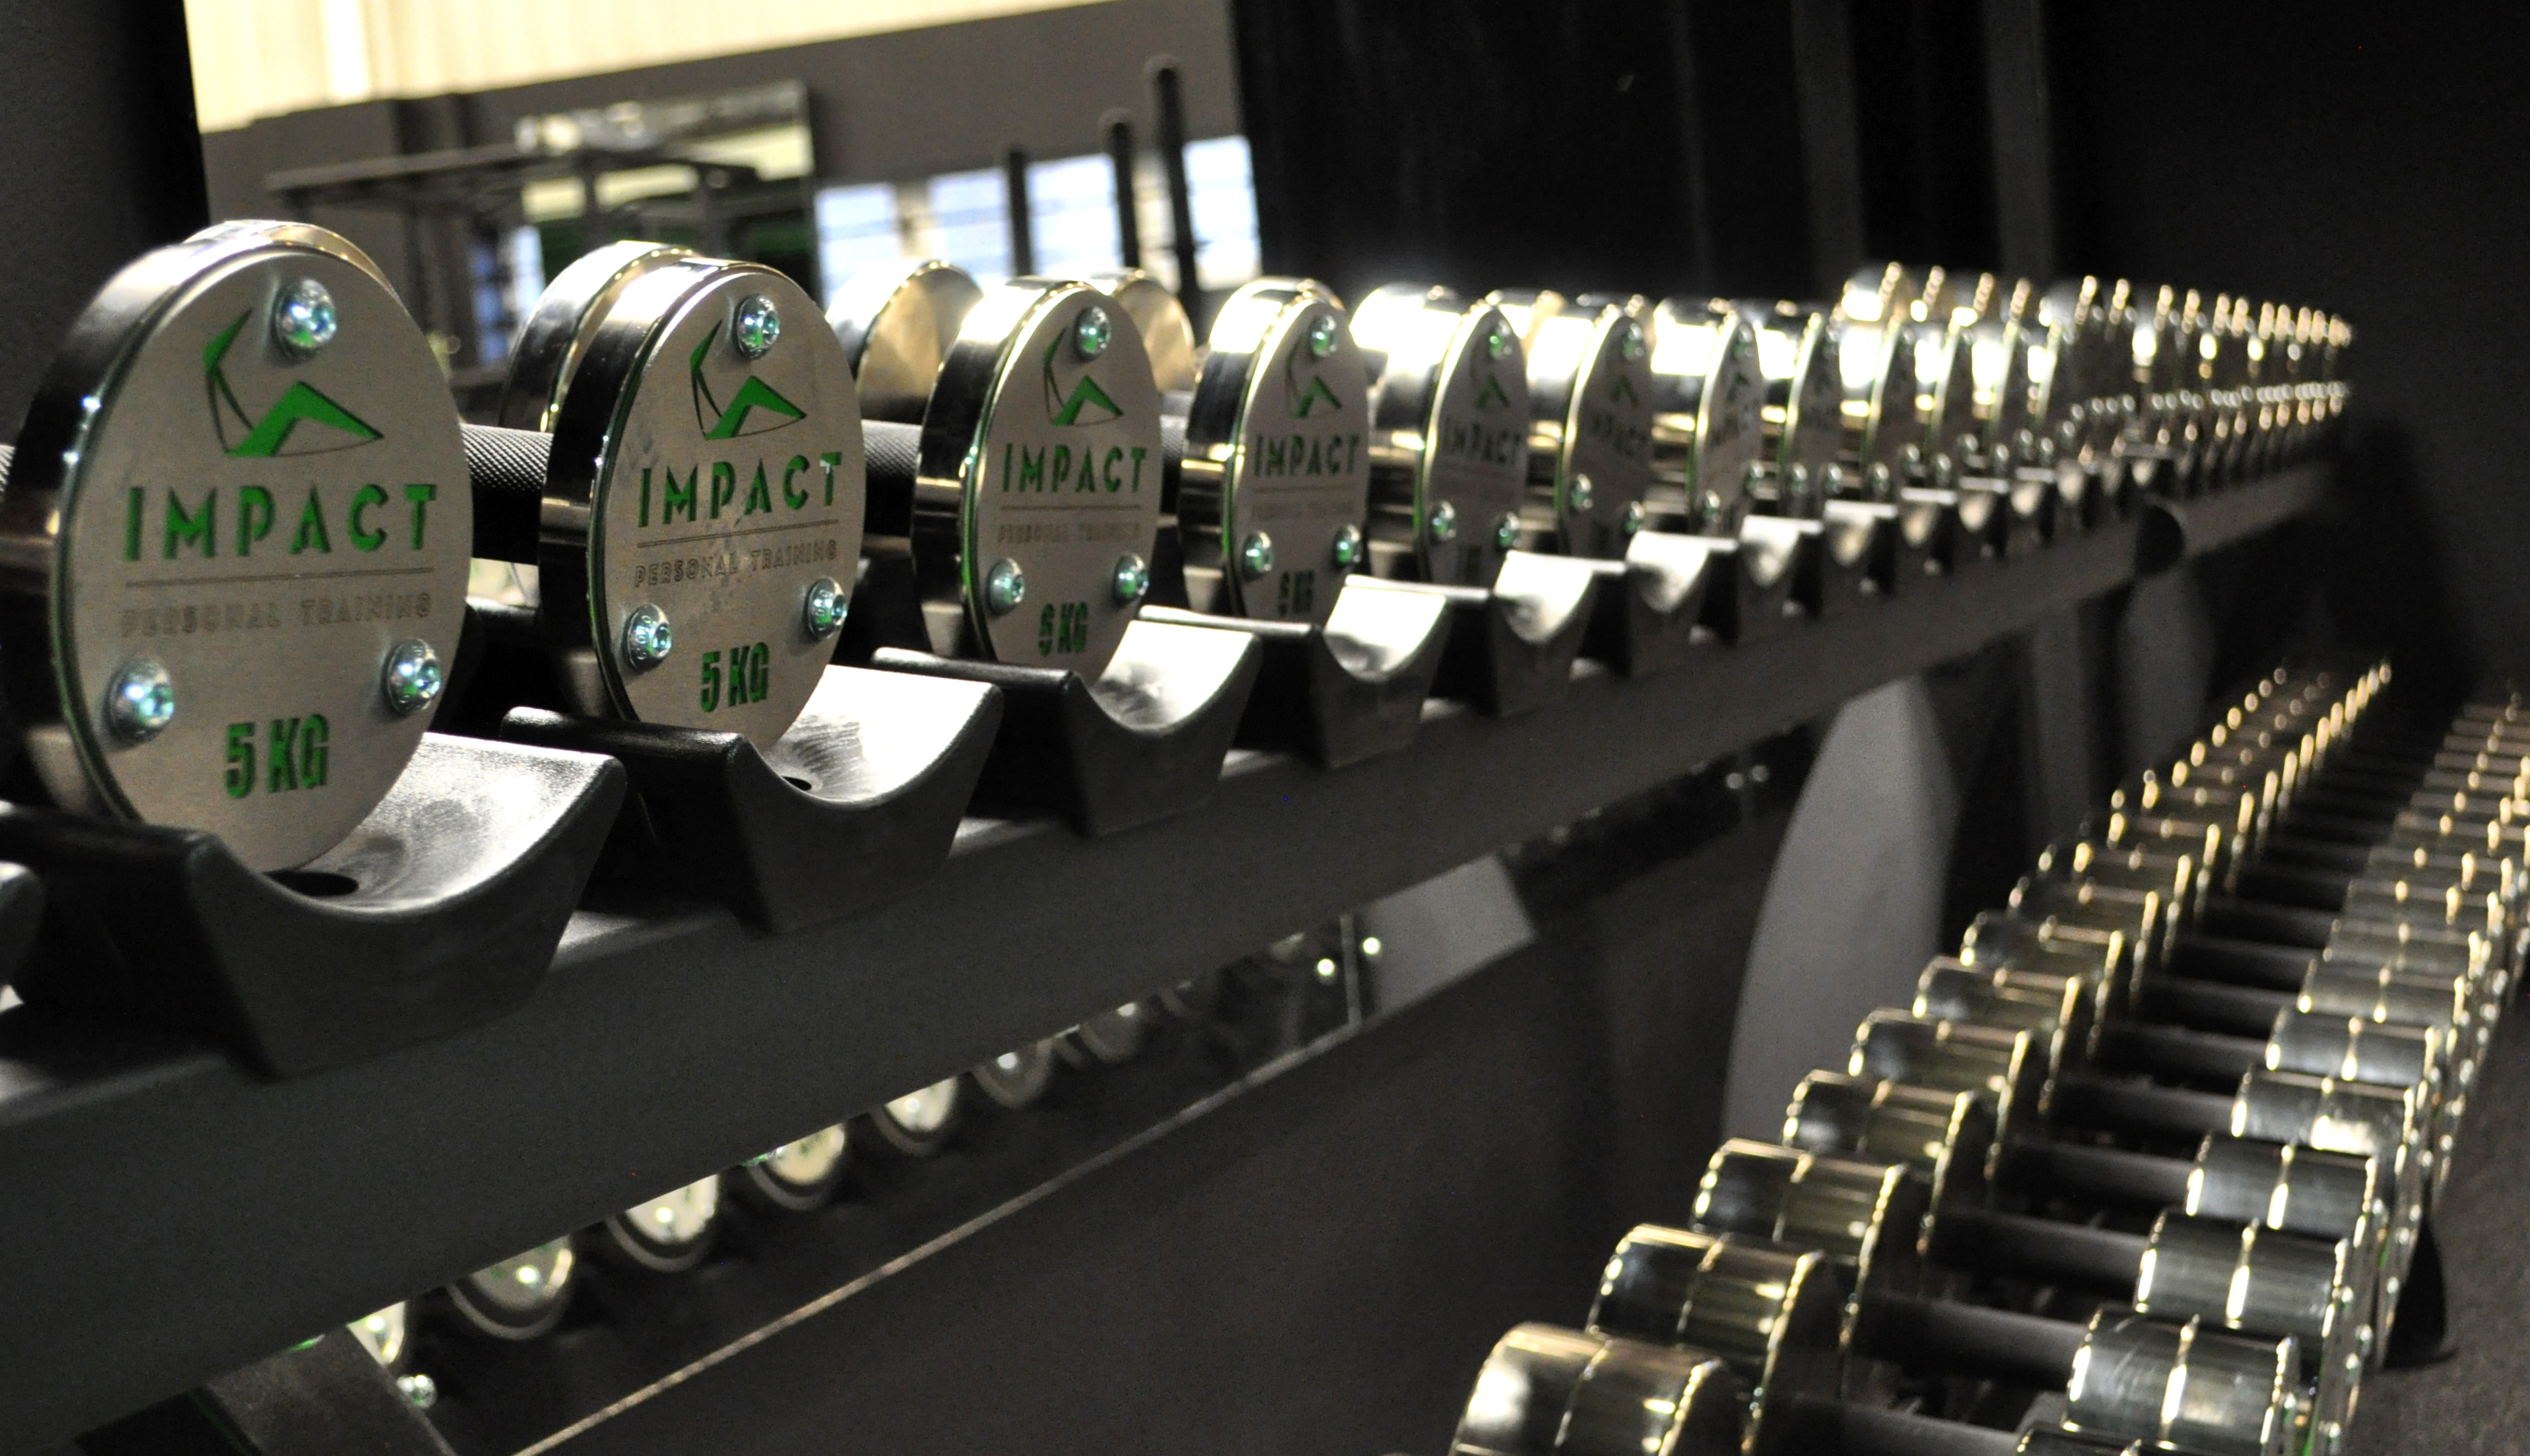 M10 Fitness - Dumbbells in Front of Mirror